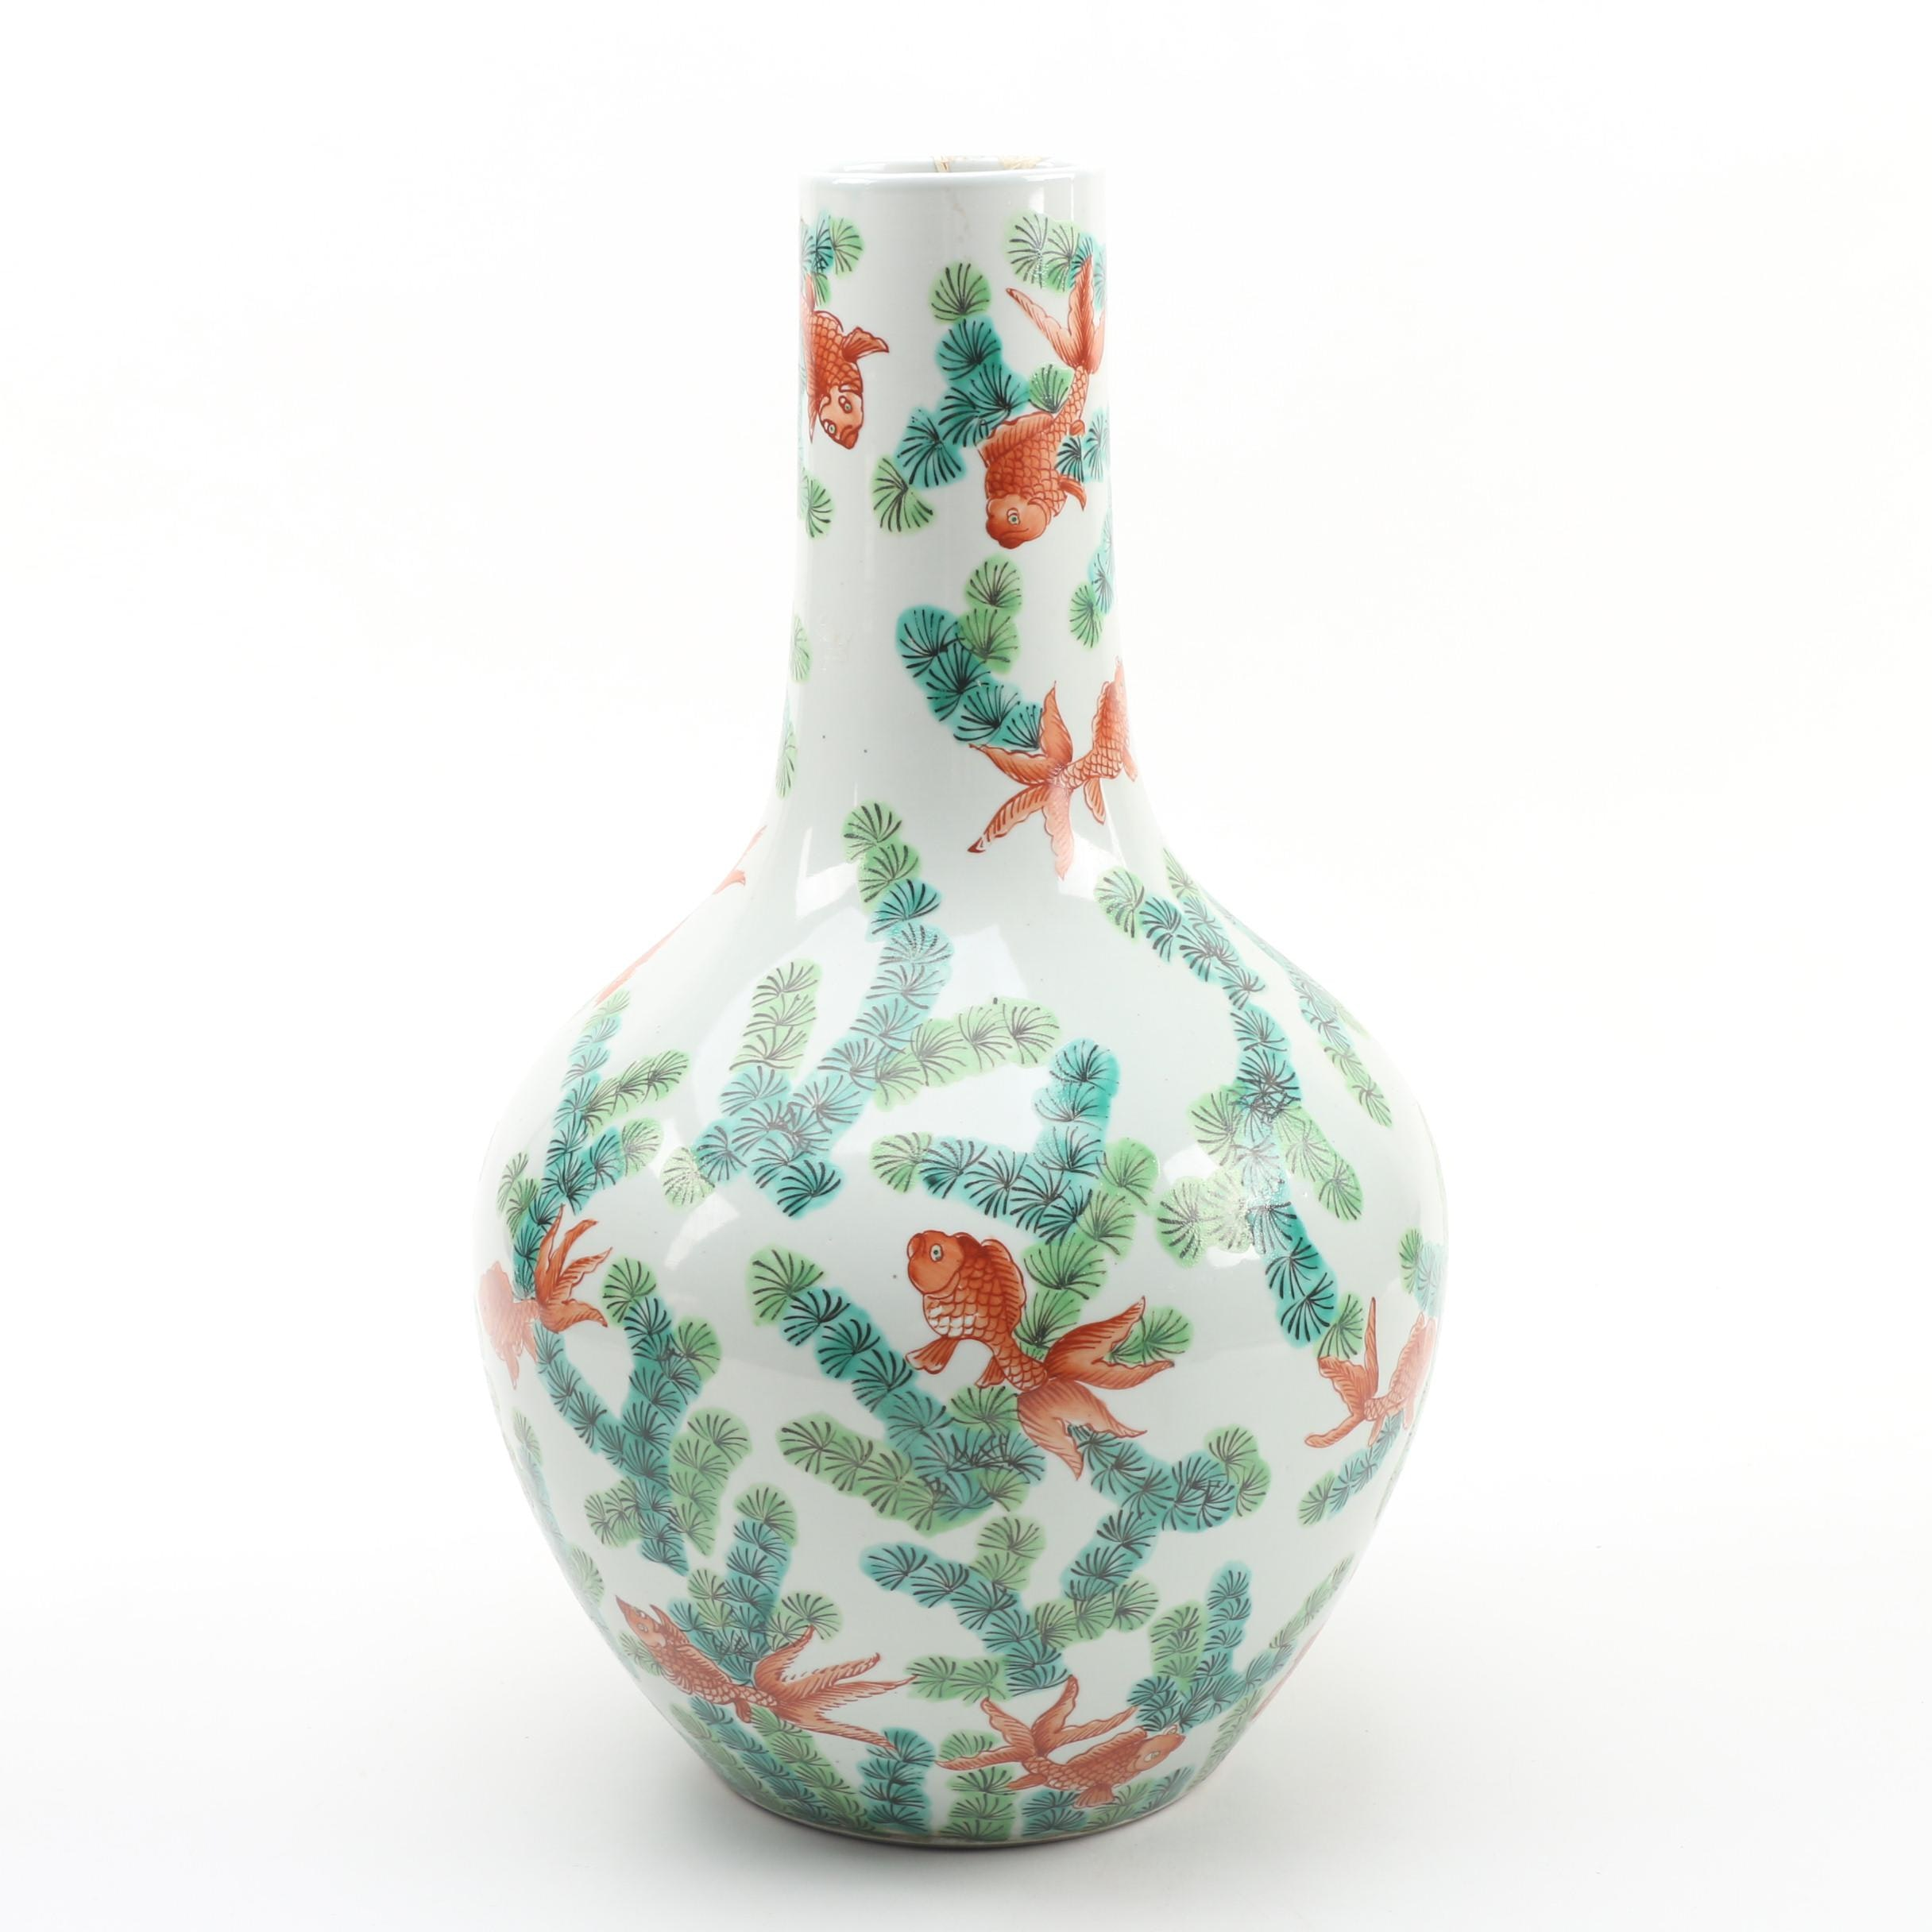 Chinese Ceramic Bottle Vase